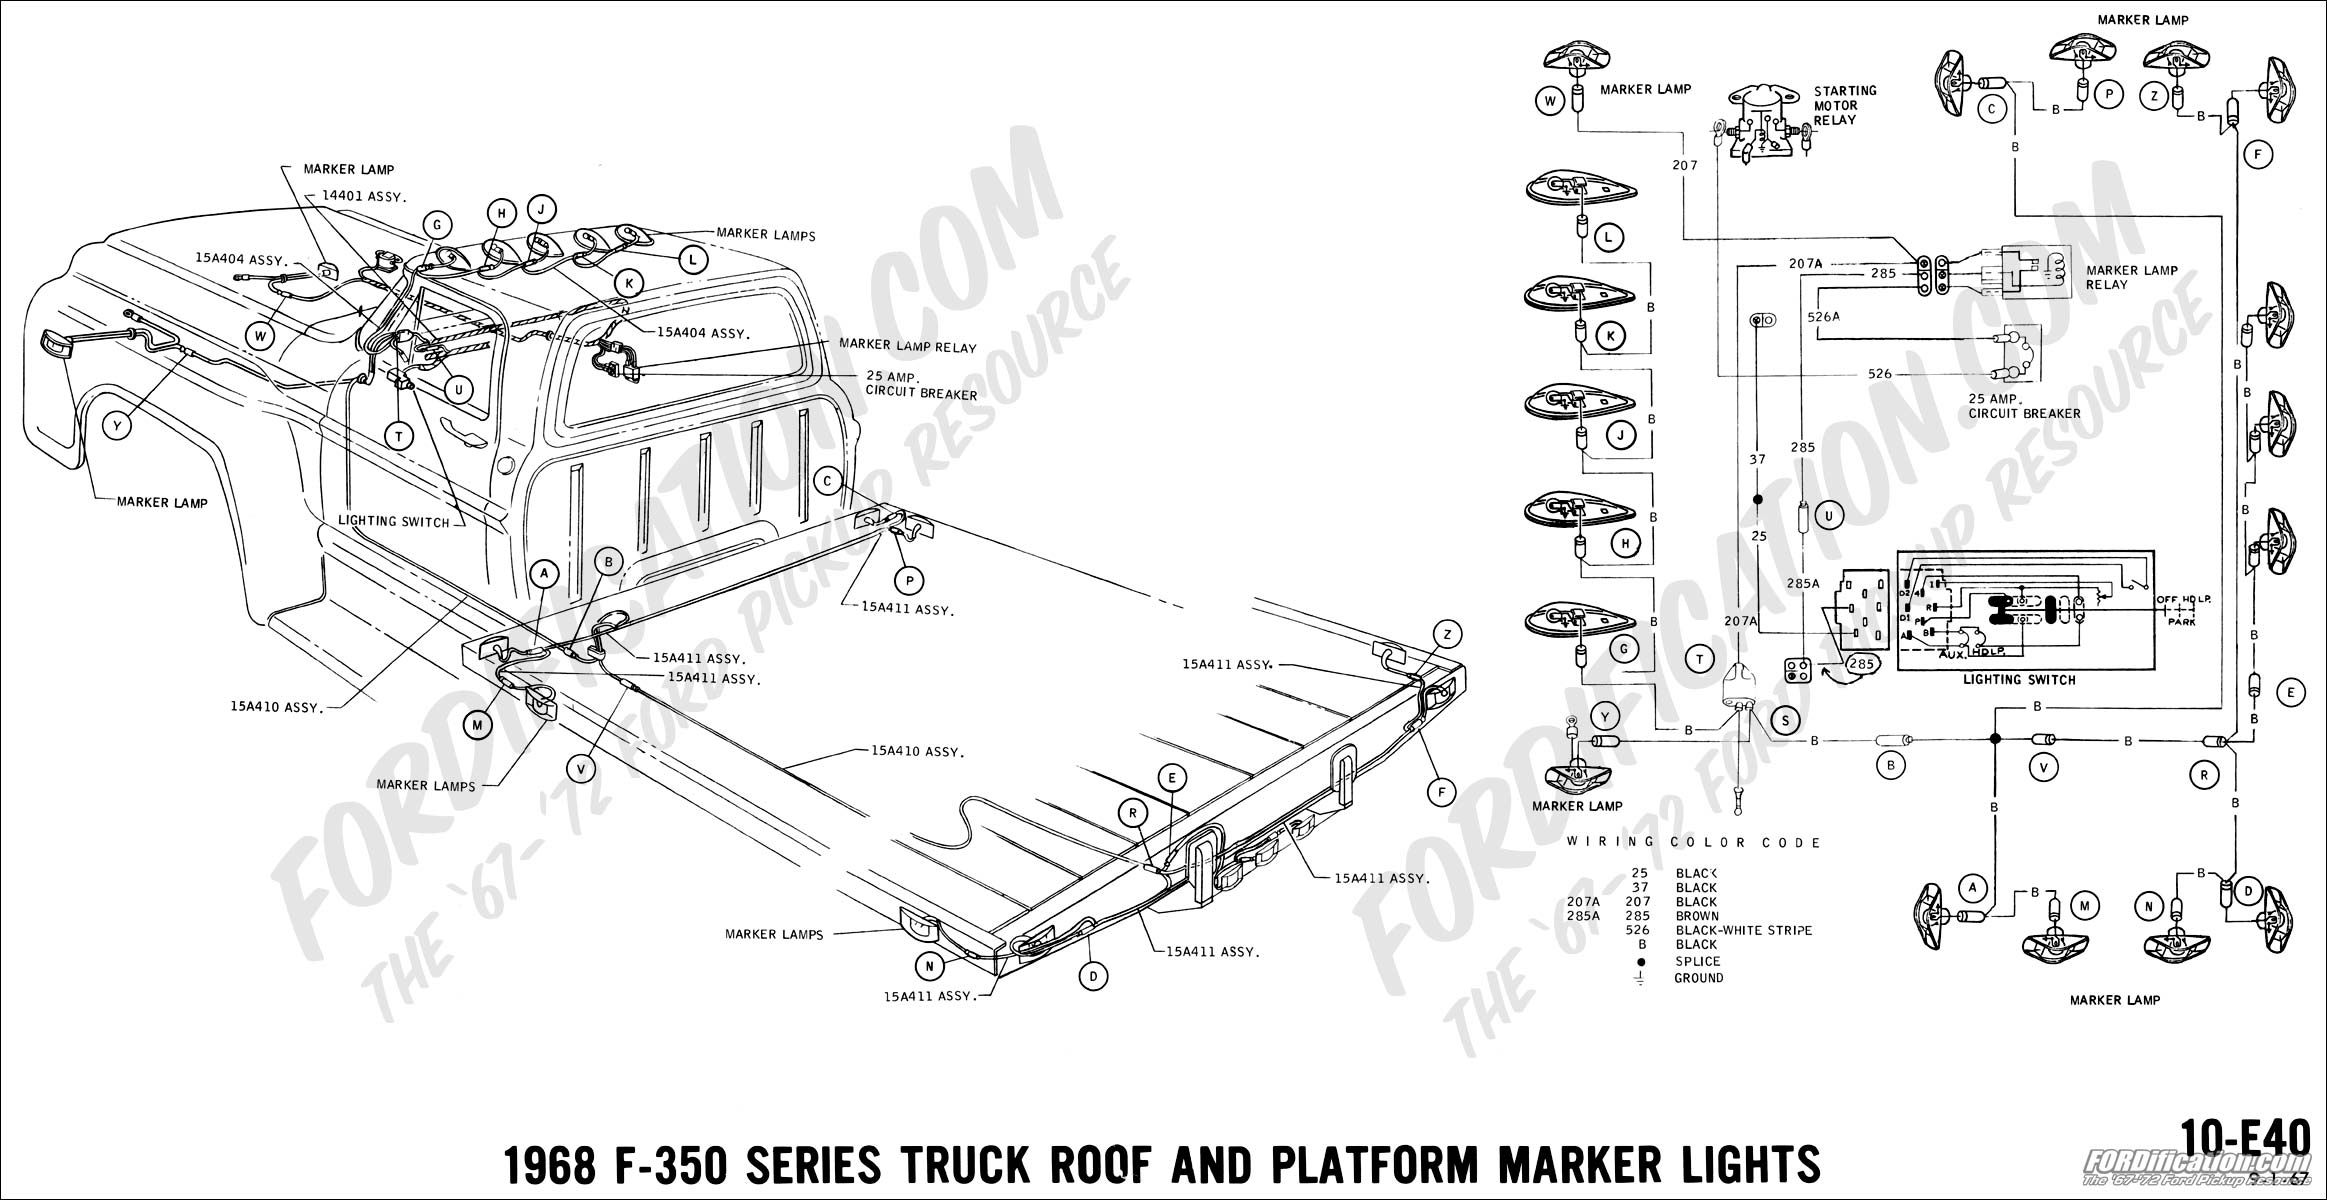 68 42 ford truck technical drawings and schematics section h wiring Peterbilt Truck Wiring Schematics at bayanpartner.co